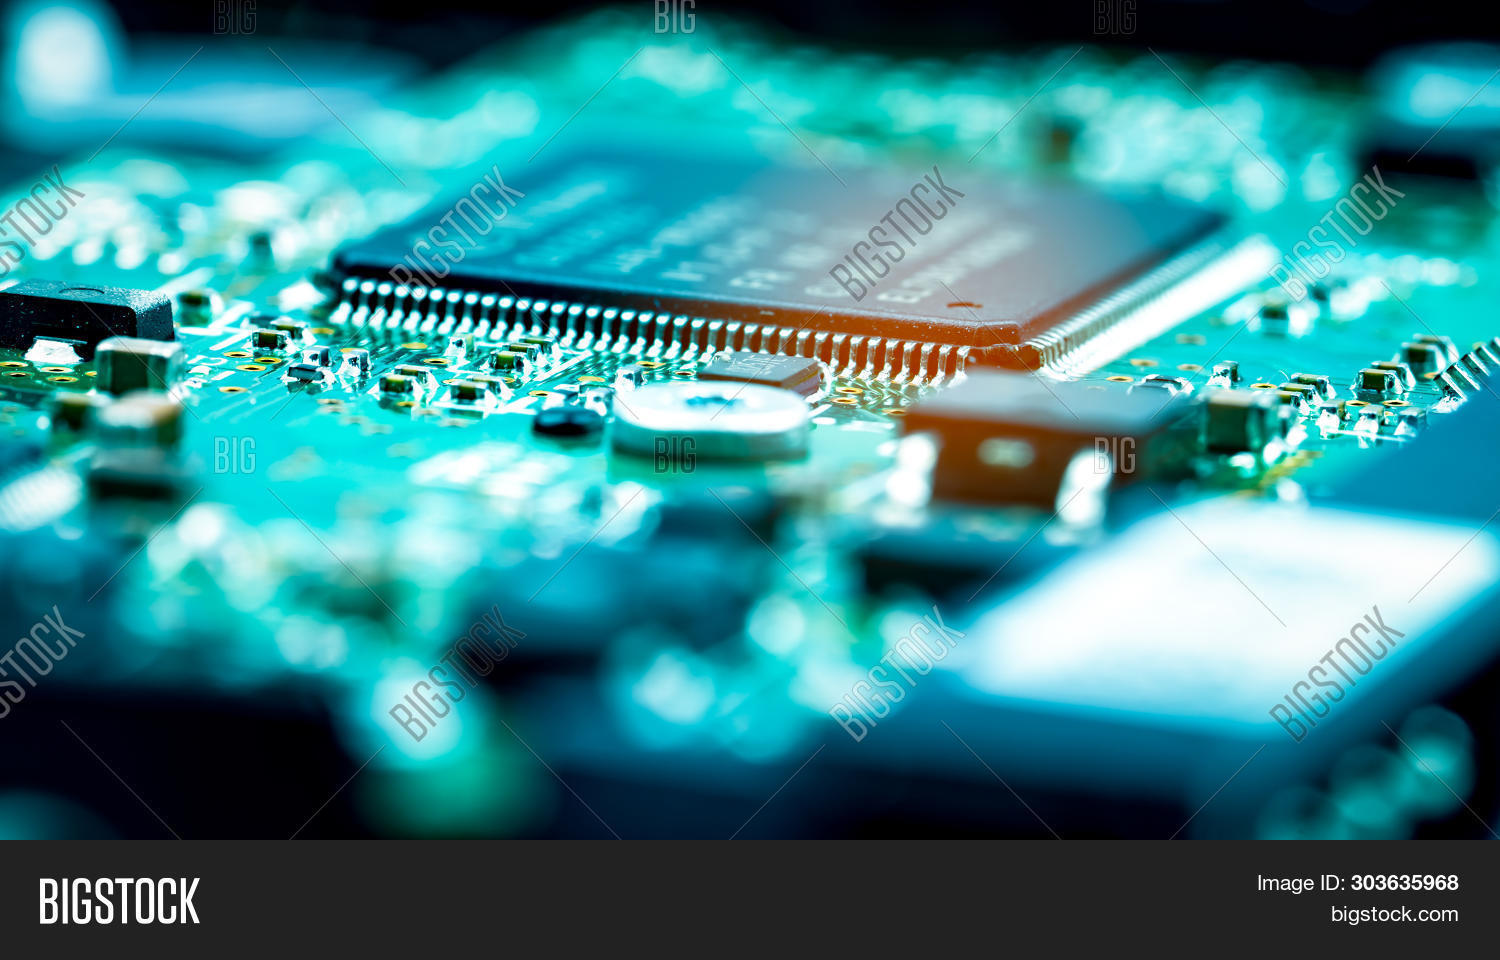 assembly,board,capacitor,card,center,chip,circuit,closeup,communication,component,computer,concept,connection,data,detail,device,digital,diode,electric,electronic,engineering,equipment,future,green,hardware,industrial,industry,information,integrated,macro,mainboard,manufacturing,memory,microchip,microprocessor,motherboard,network,pattern,pc,processor,resistor,science,semiconductor,silicon,structure,system,tech,technology,telecommunication,transistor